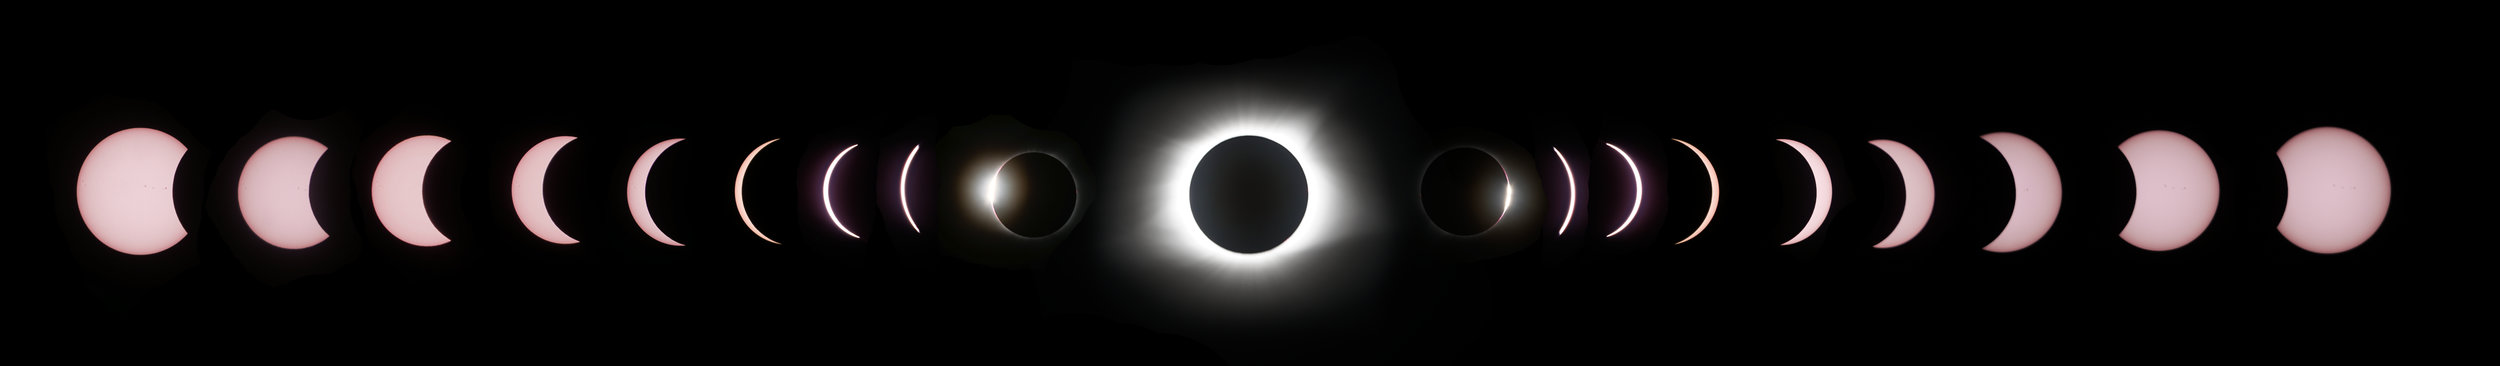 Shot 3 - Composite of the entire eclipse progression - Accomplished